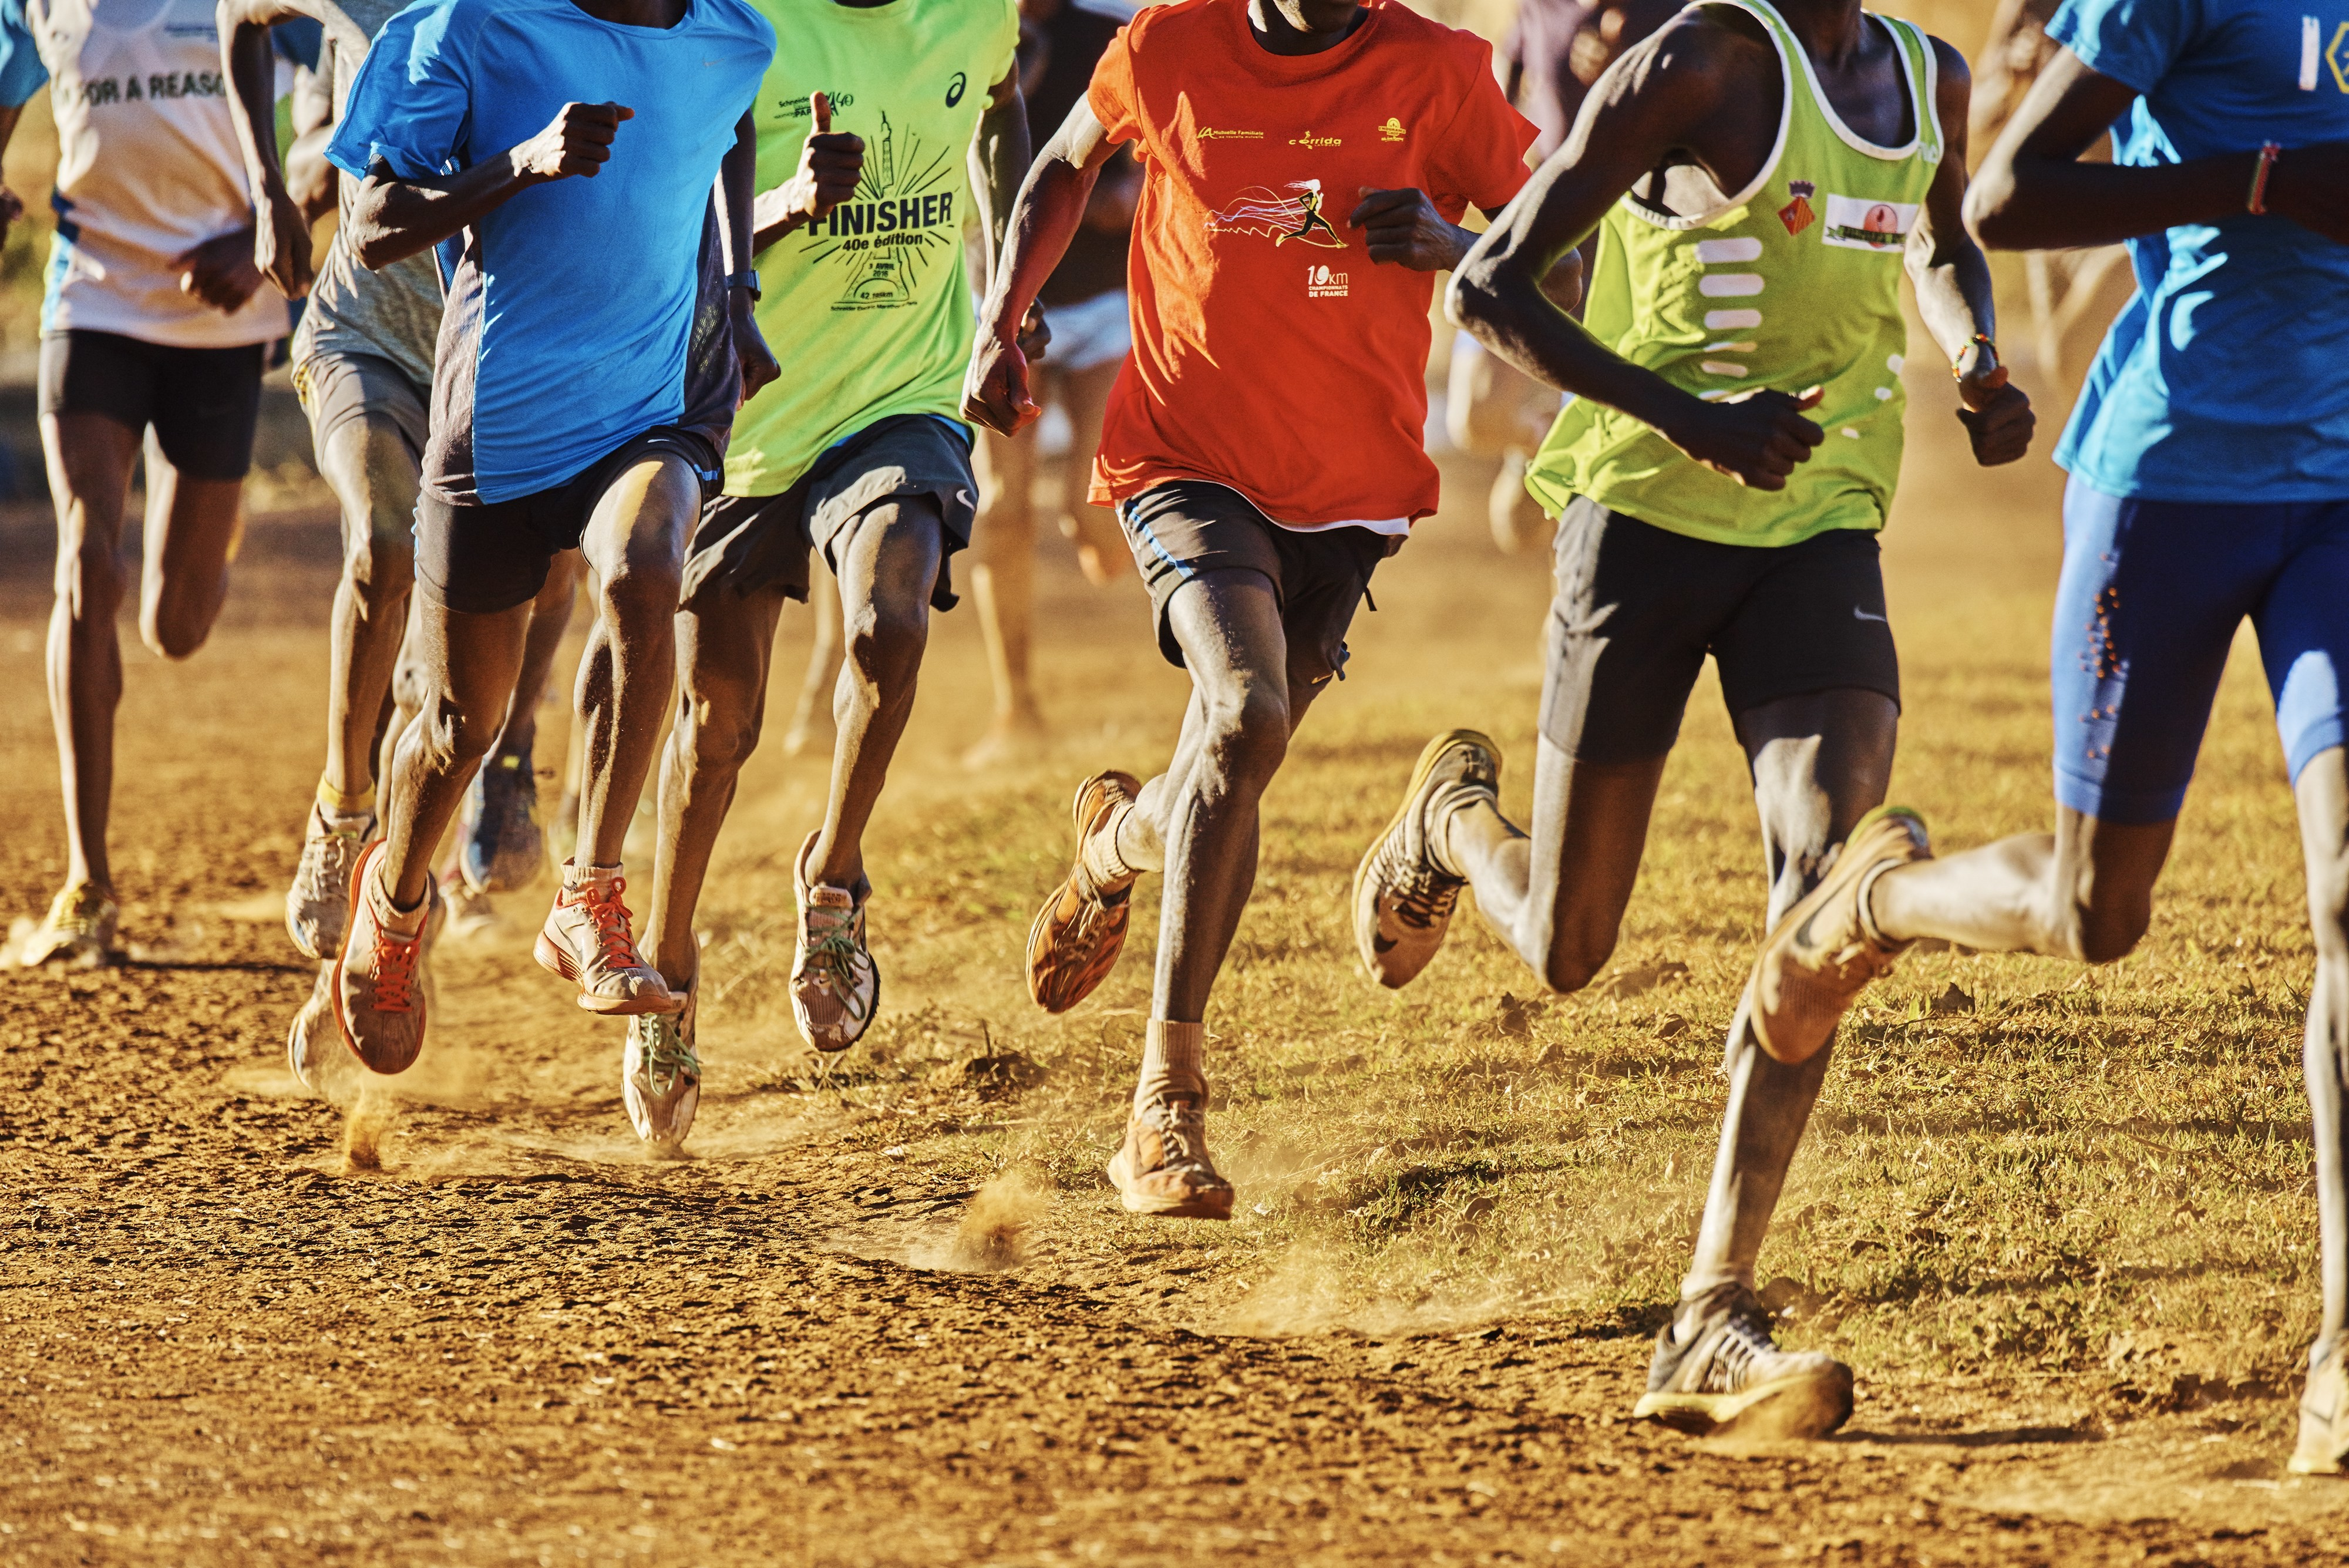 Thousands of Kenyan runners have the same dream Part 1: The Real Running Scene in the country of Kenya